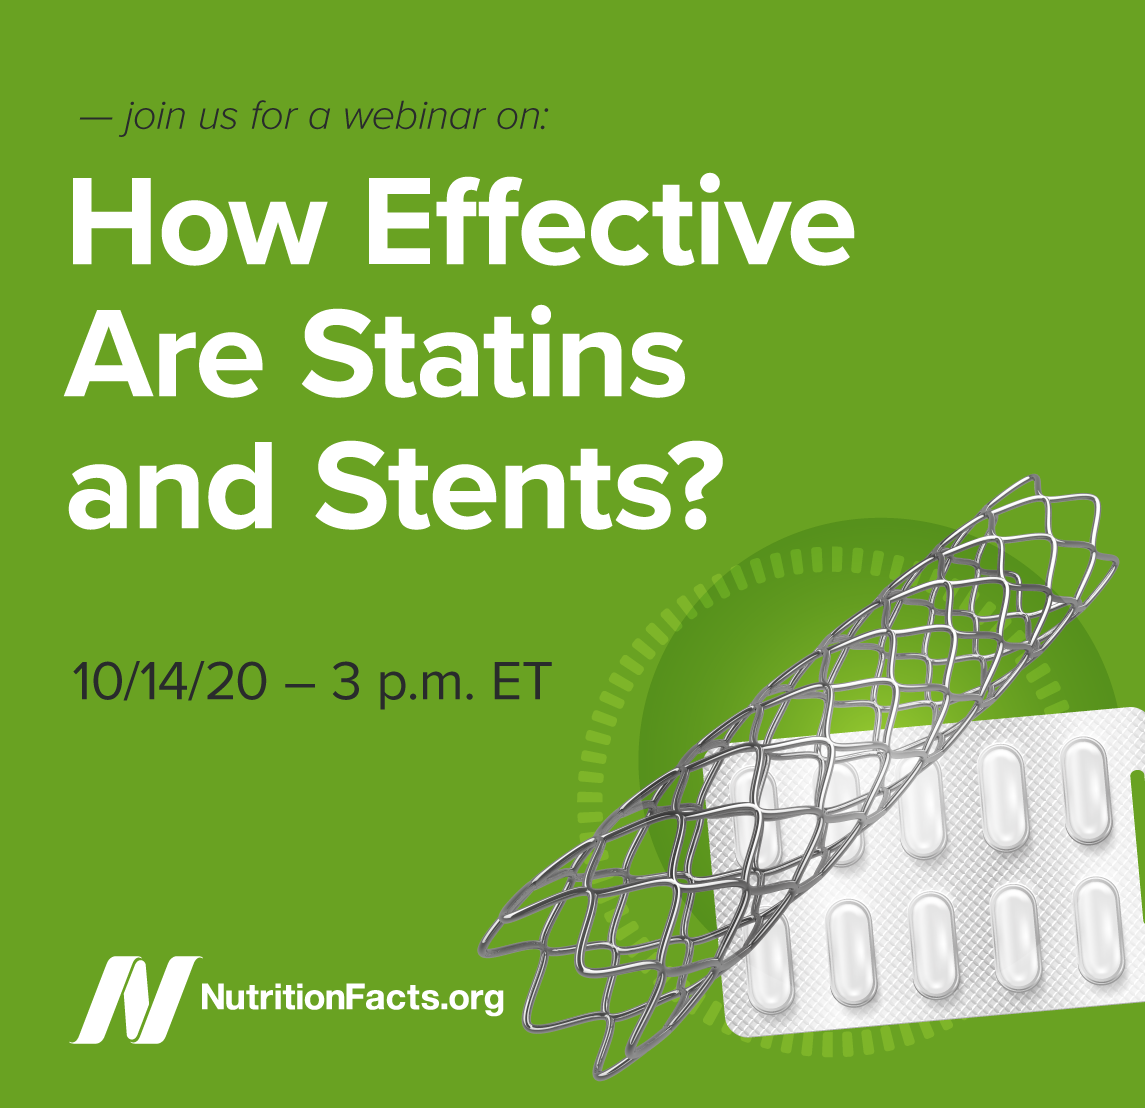 How Effective Are Statins and Stents